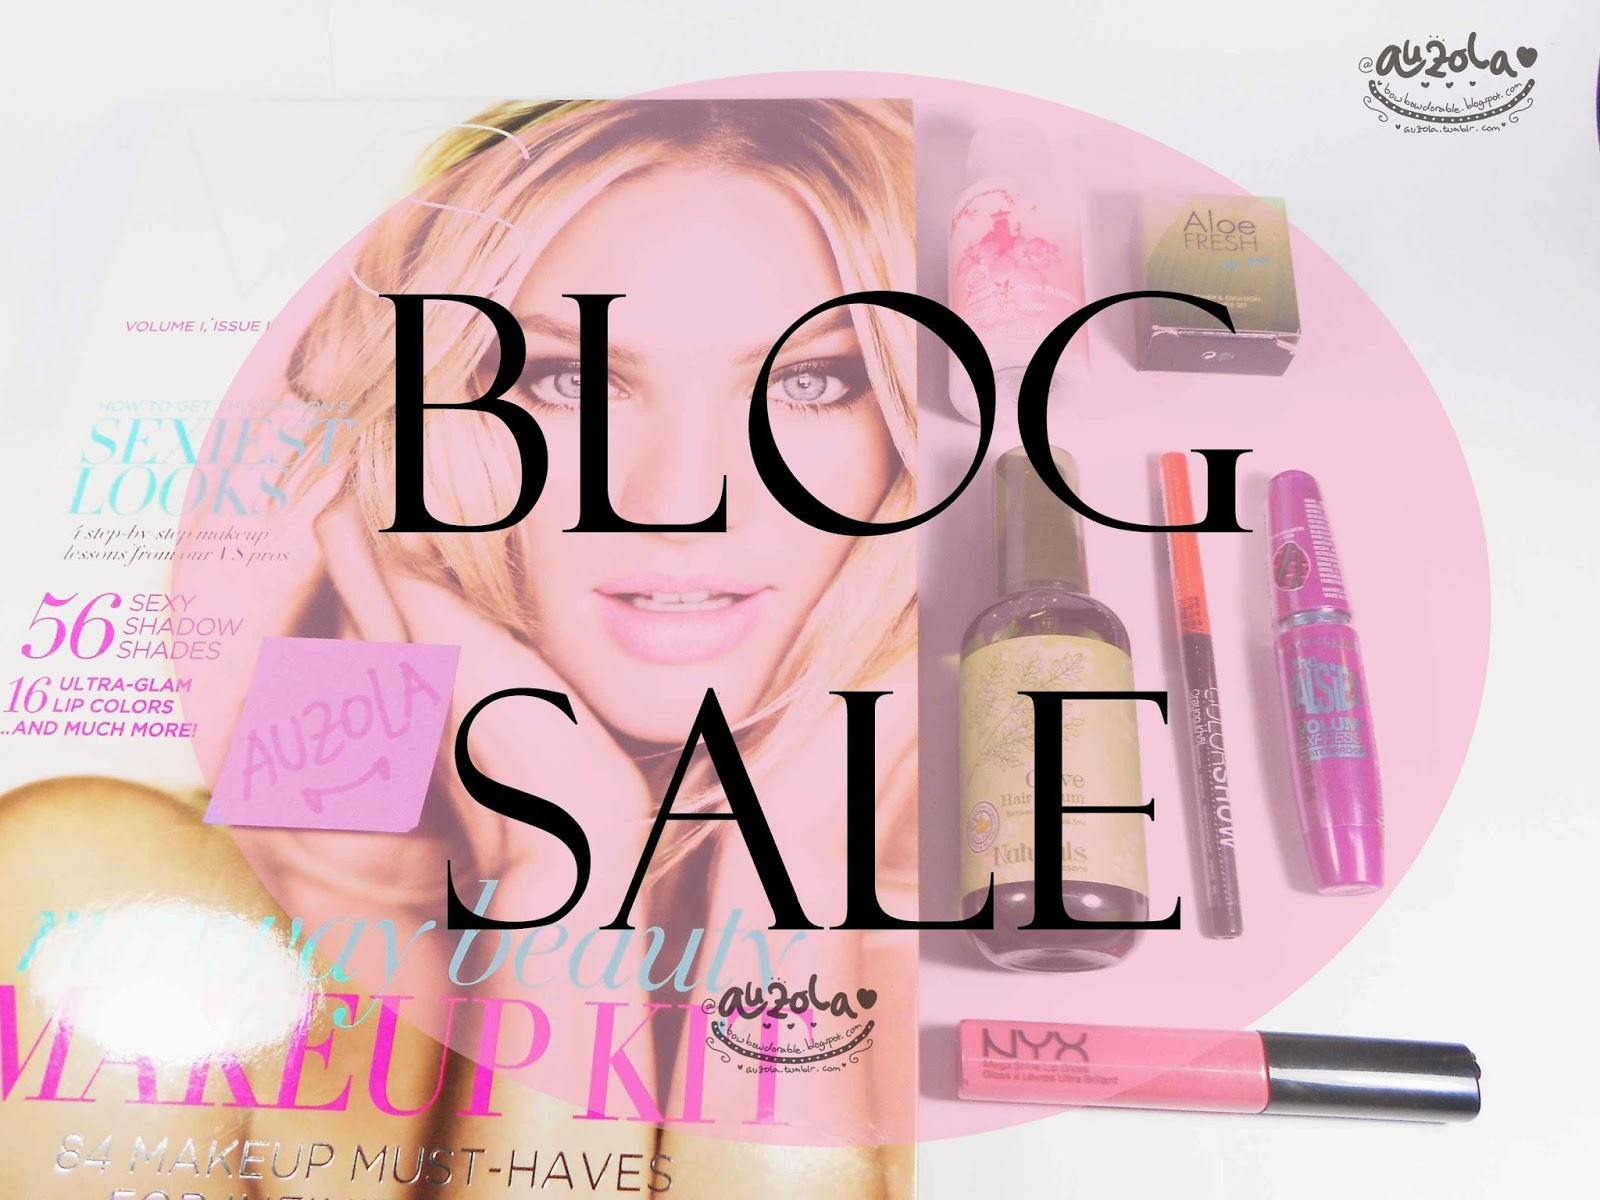 http://bowbowdorable.blogspot.com/2014/09/alert-blog-sale.html